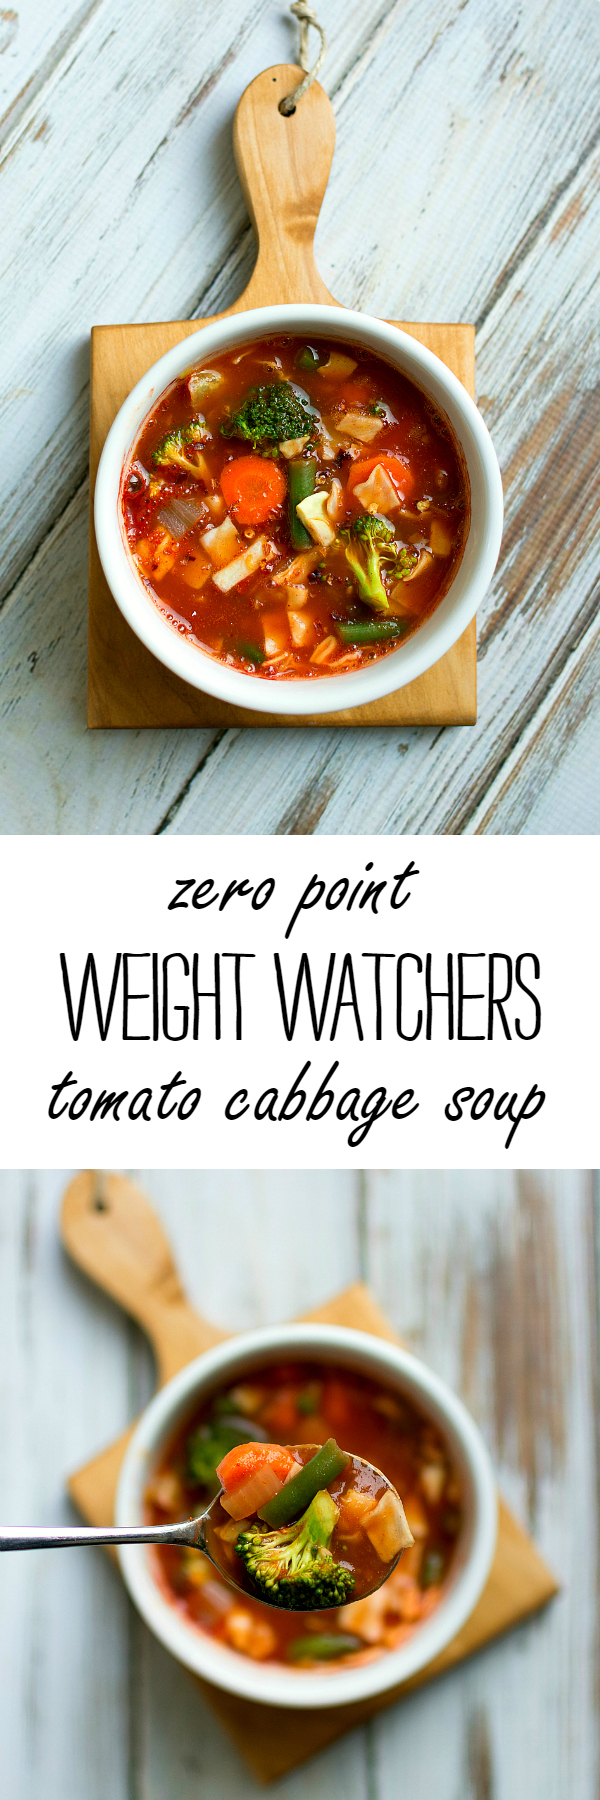 Weight Watchers Recipe Ideas - 0 Point Recipe Ideas